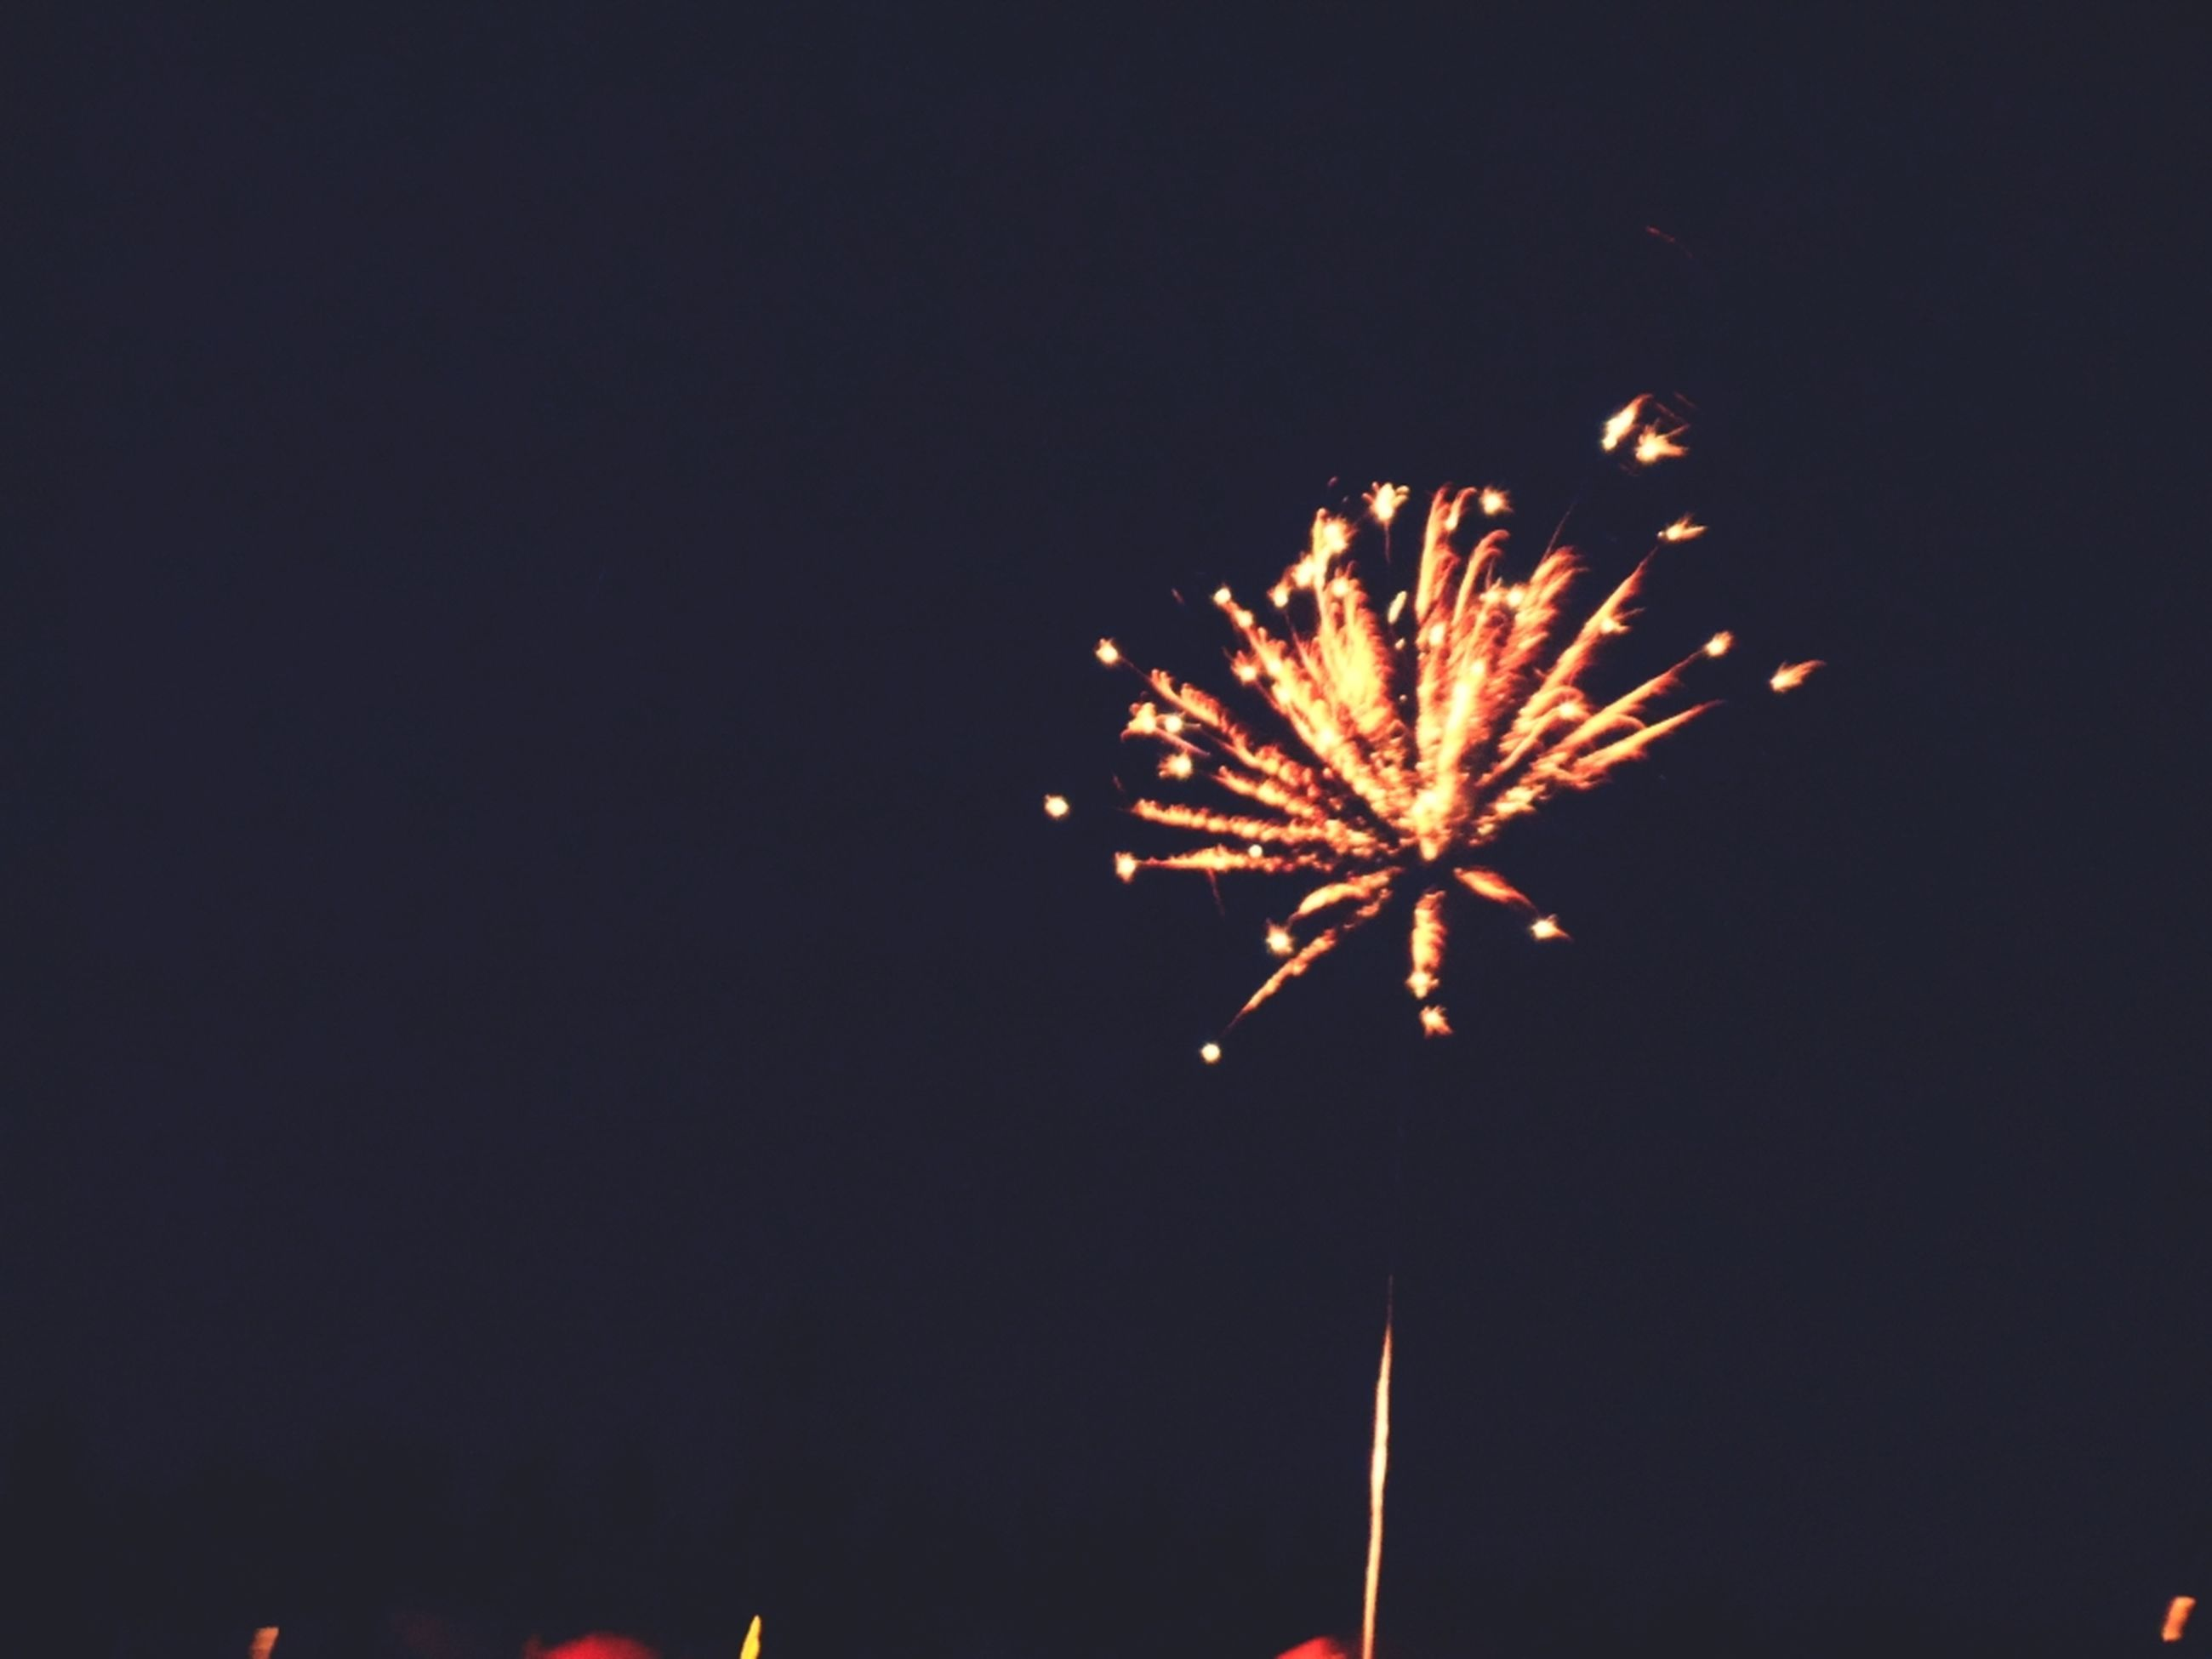 night, low angle view, celebration, firework display, illuminated, exploding, clear sky, firework - man made object, arts culture and entertainment, motion, long exposure, glowing, event, copy space, sky, firework, entertainment, red, sparks, celebration event